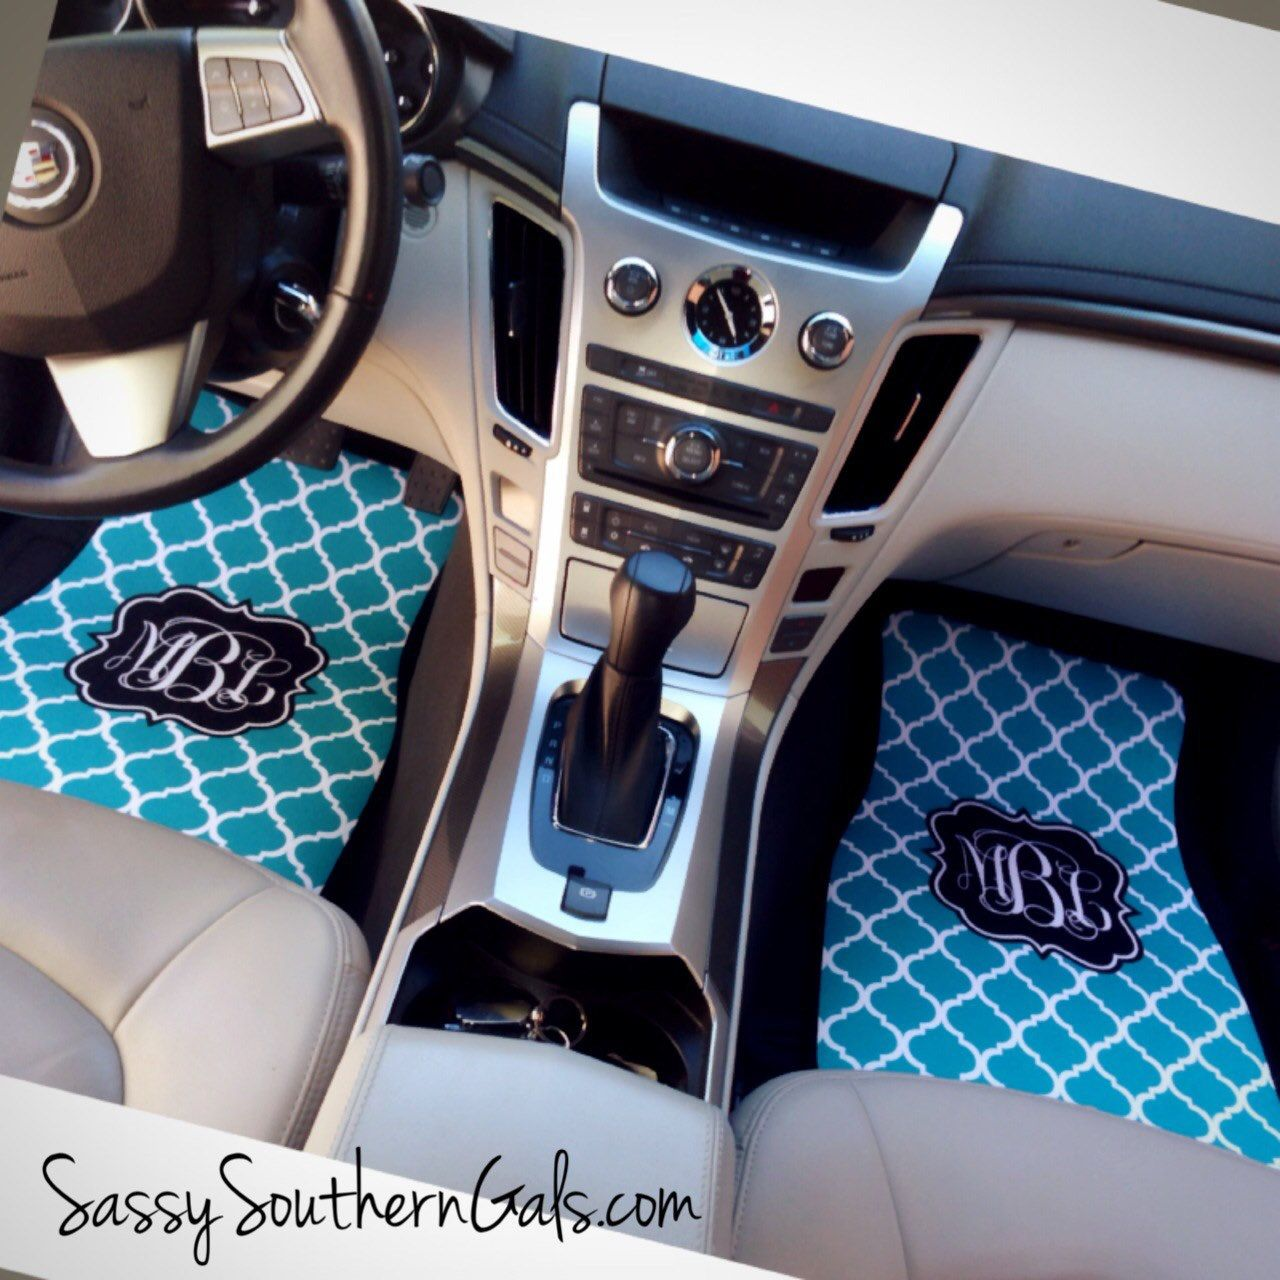 Items similar to Quatrefoil Pattern Monogrammed Car Mats, New Driver Gift, Cute Car Accessories, Monogrammed Gift, Monogram Car Floor Mats, Monogrammed Gift on Etsy